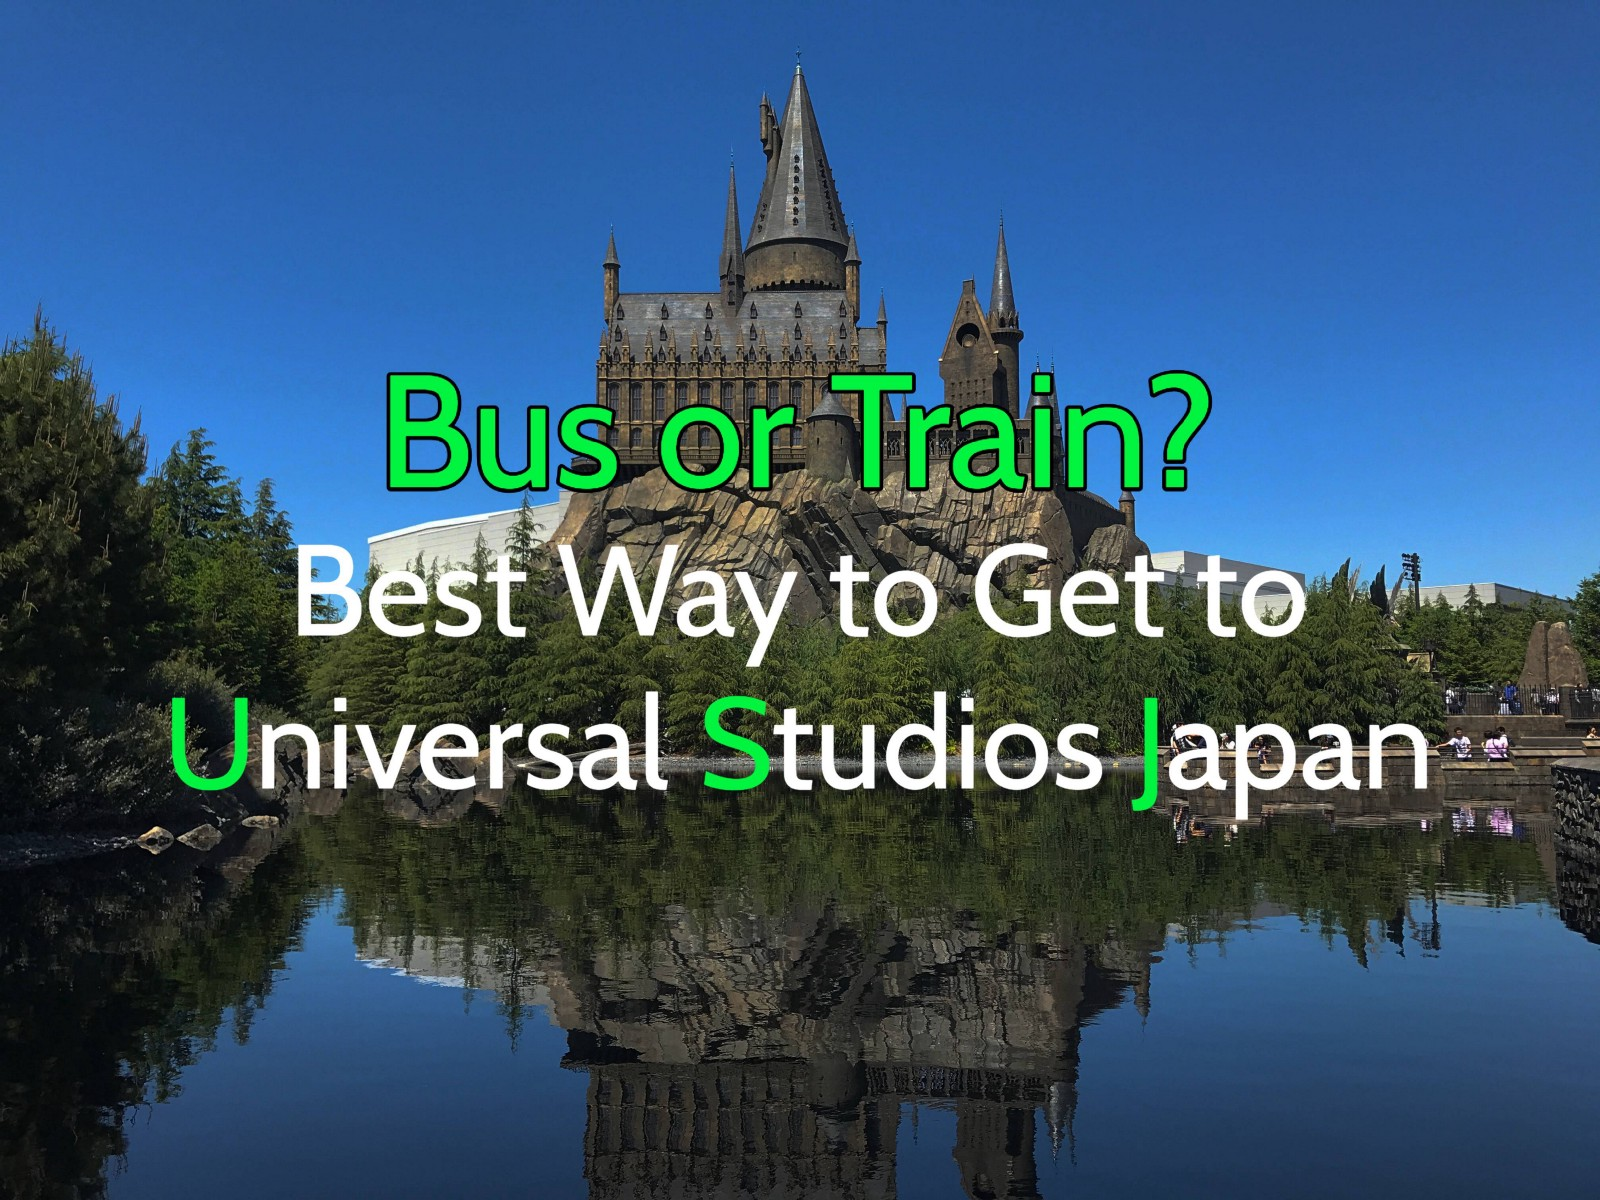 How to Get to Universal Studios Japan: Bus or Train?